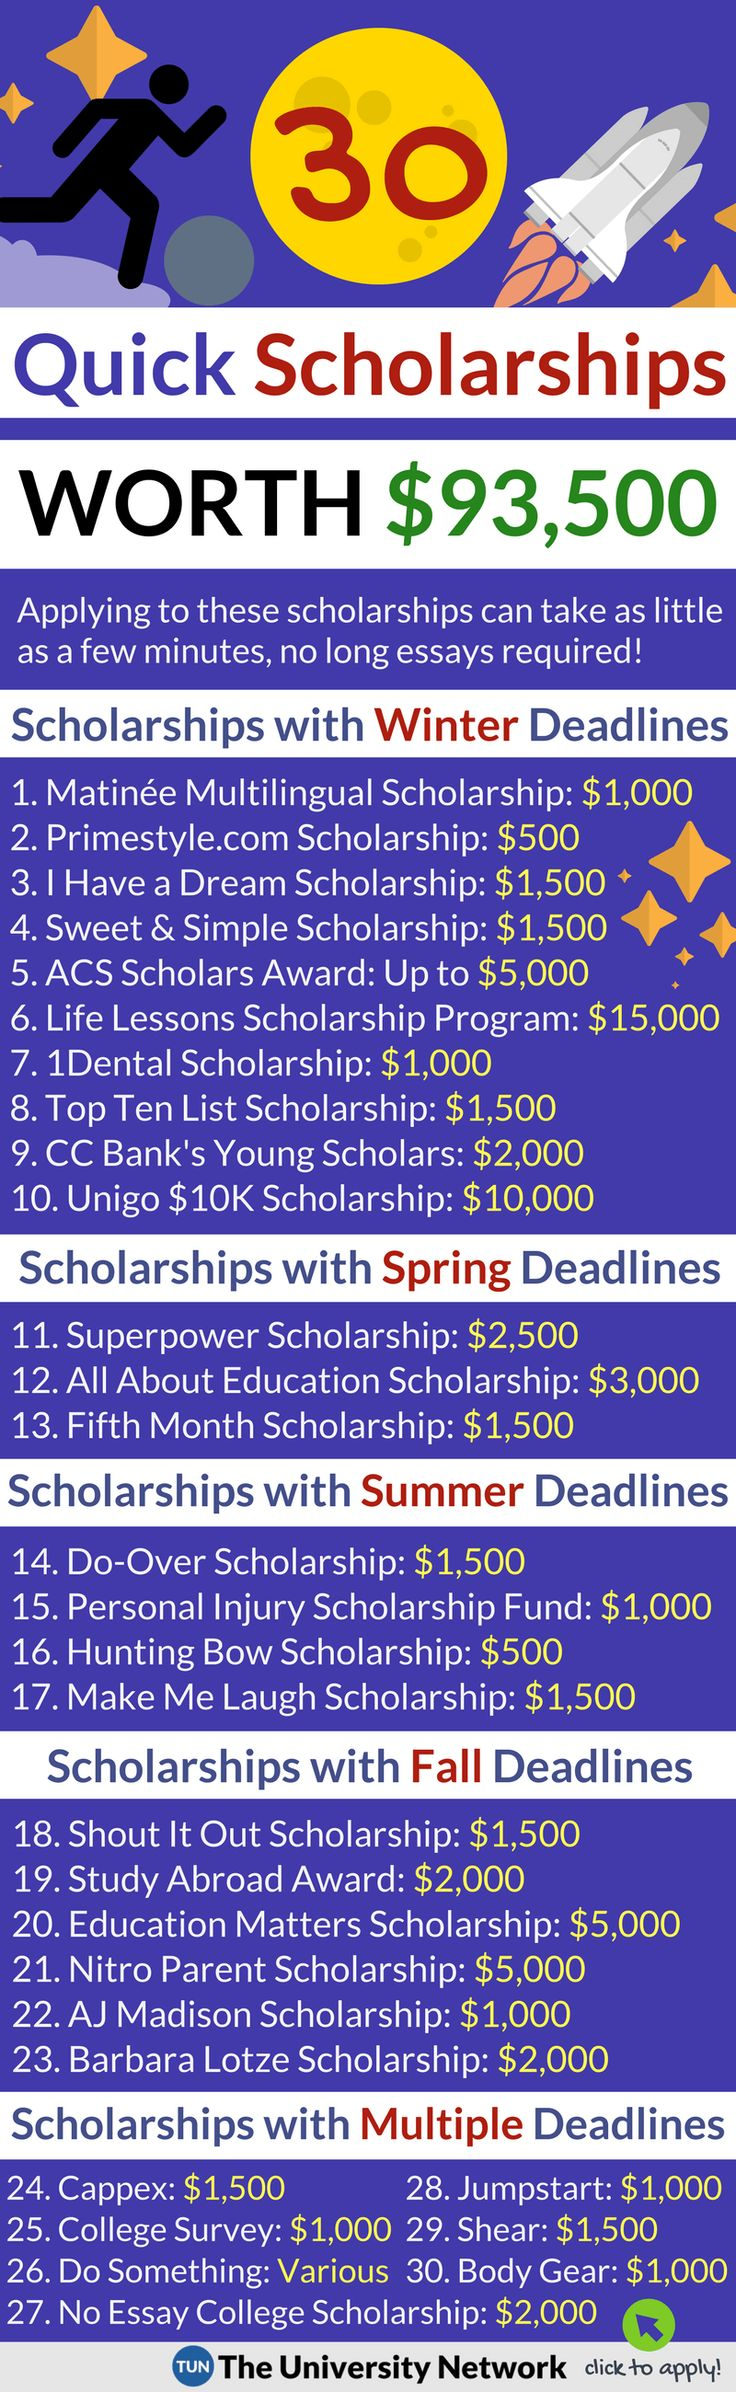 Most of these scholarships will only take a few minutes to apply to. Some just require filling out a form to enter and others require writing less than 500 words. There are no long essays to write for any of these scholarships!